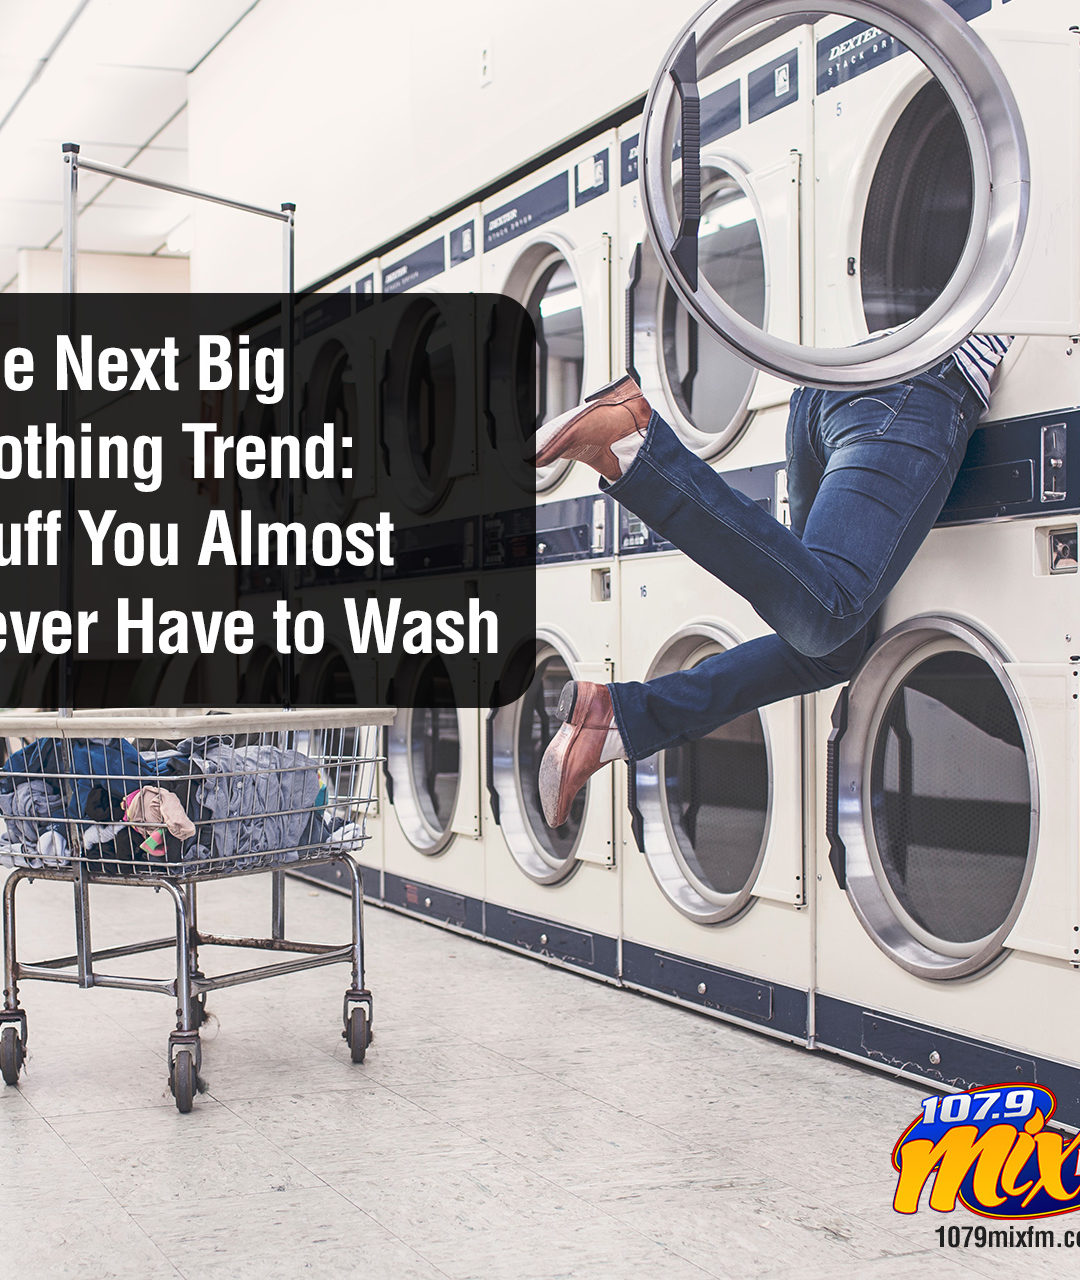 The Next Big Clothing Trend: Stuff You Almost Never Have to Wash